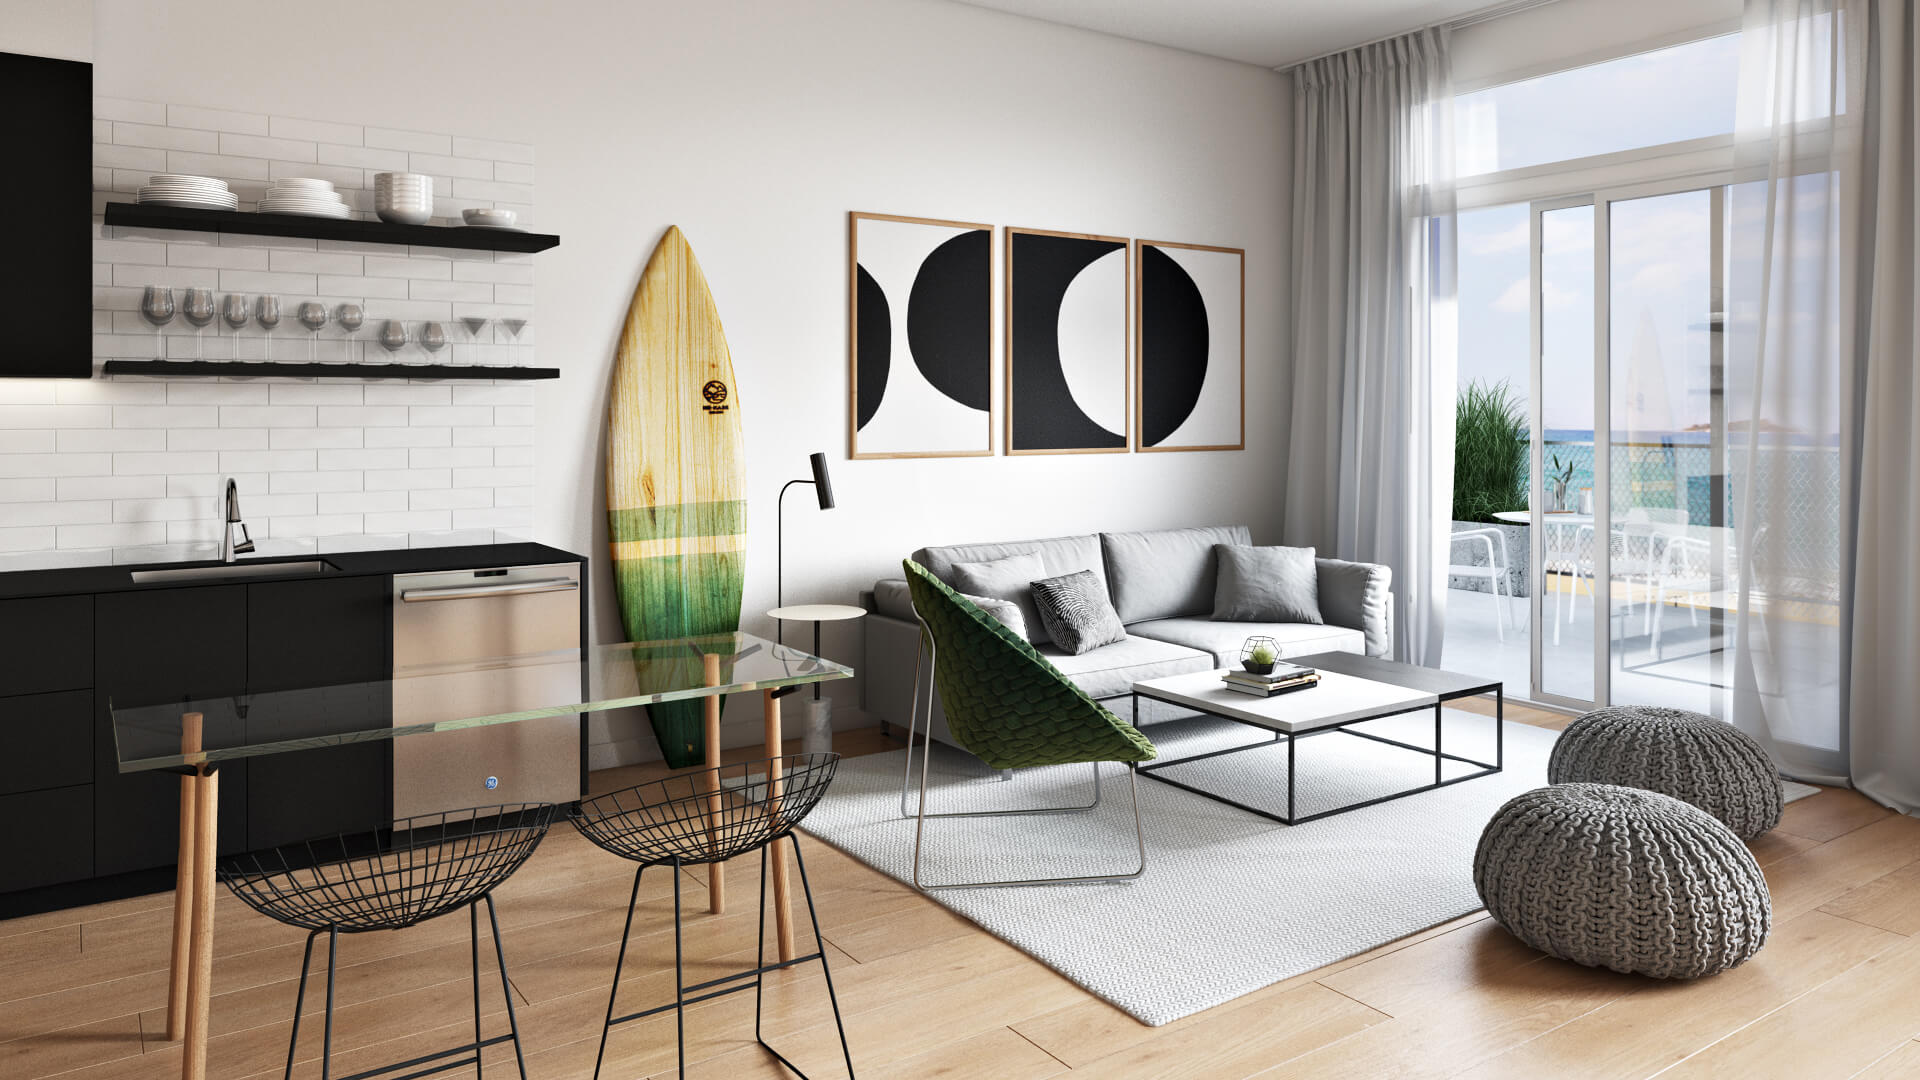 3D Rendering Of a Room With Minimalistic Interior